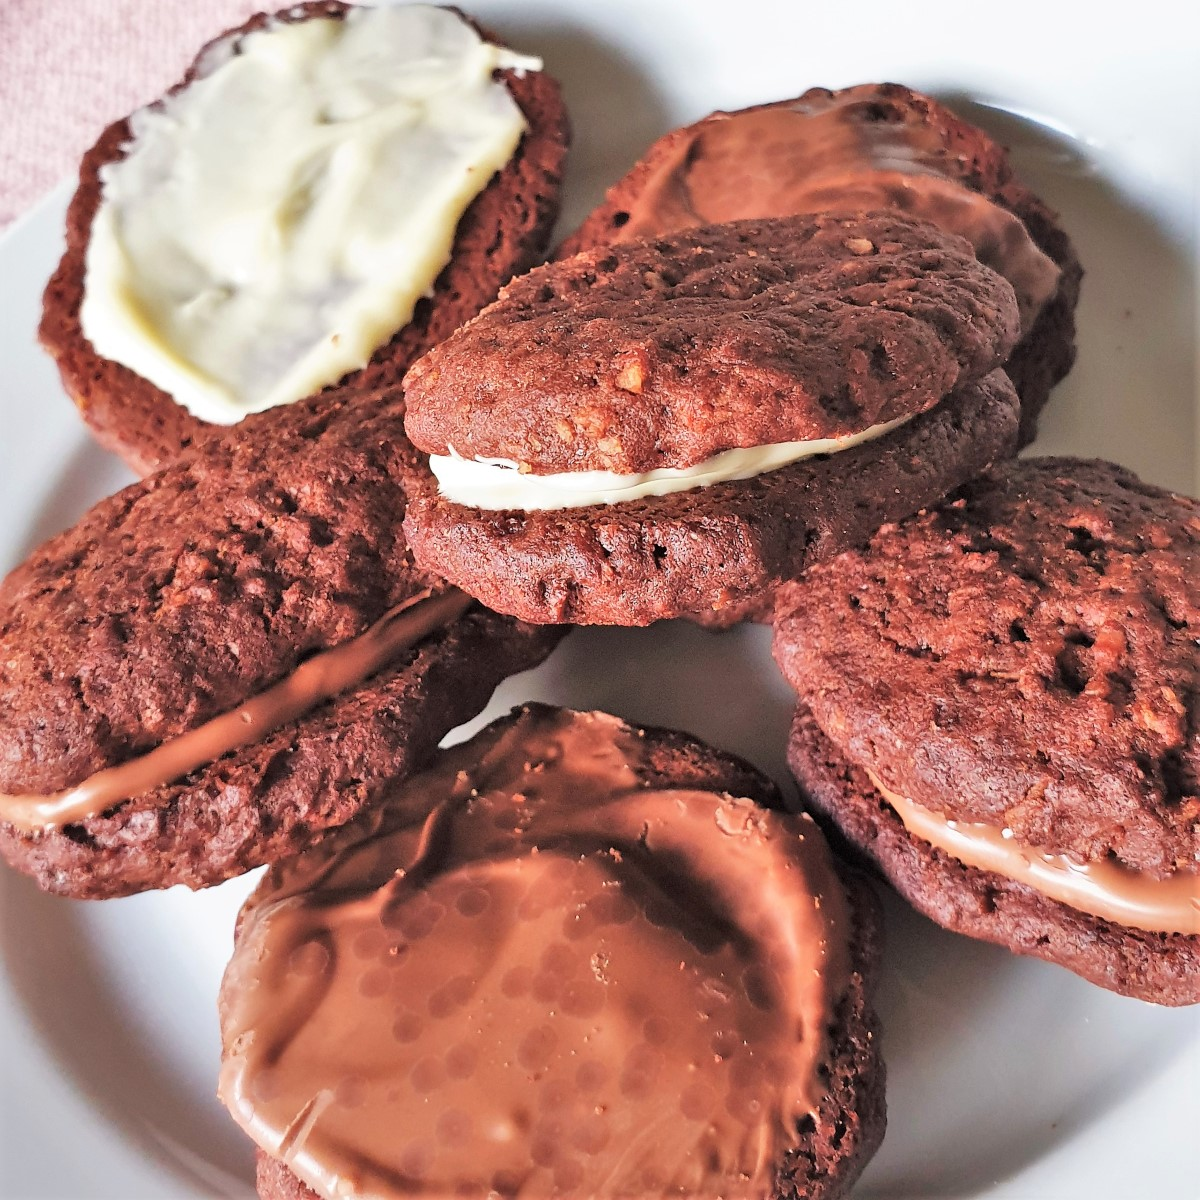 Romany creams on a plate, some sandwiched together with chocolate, others just spread with chocolate.